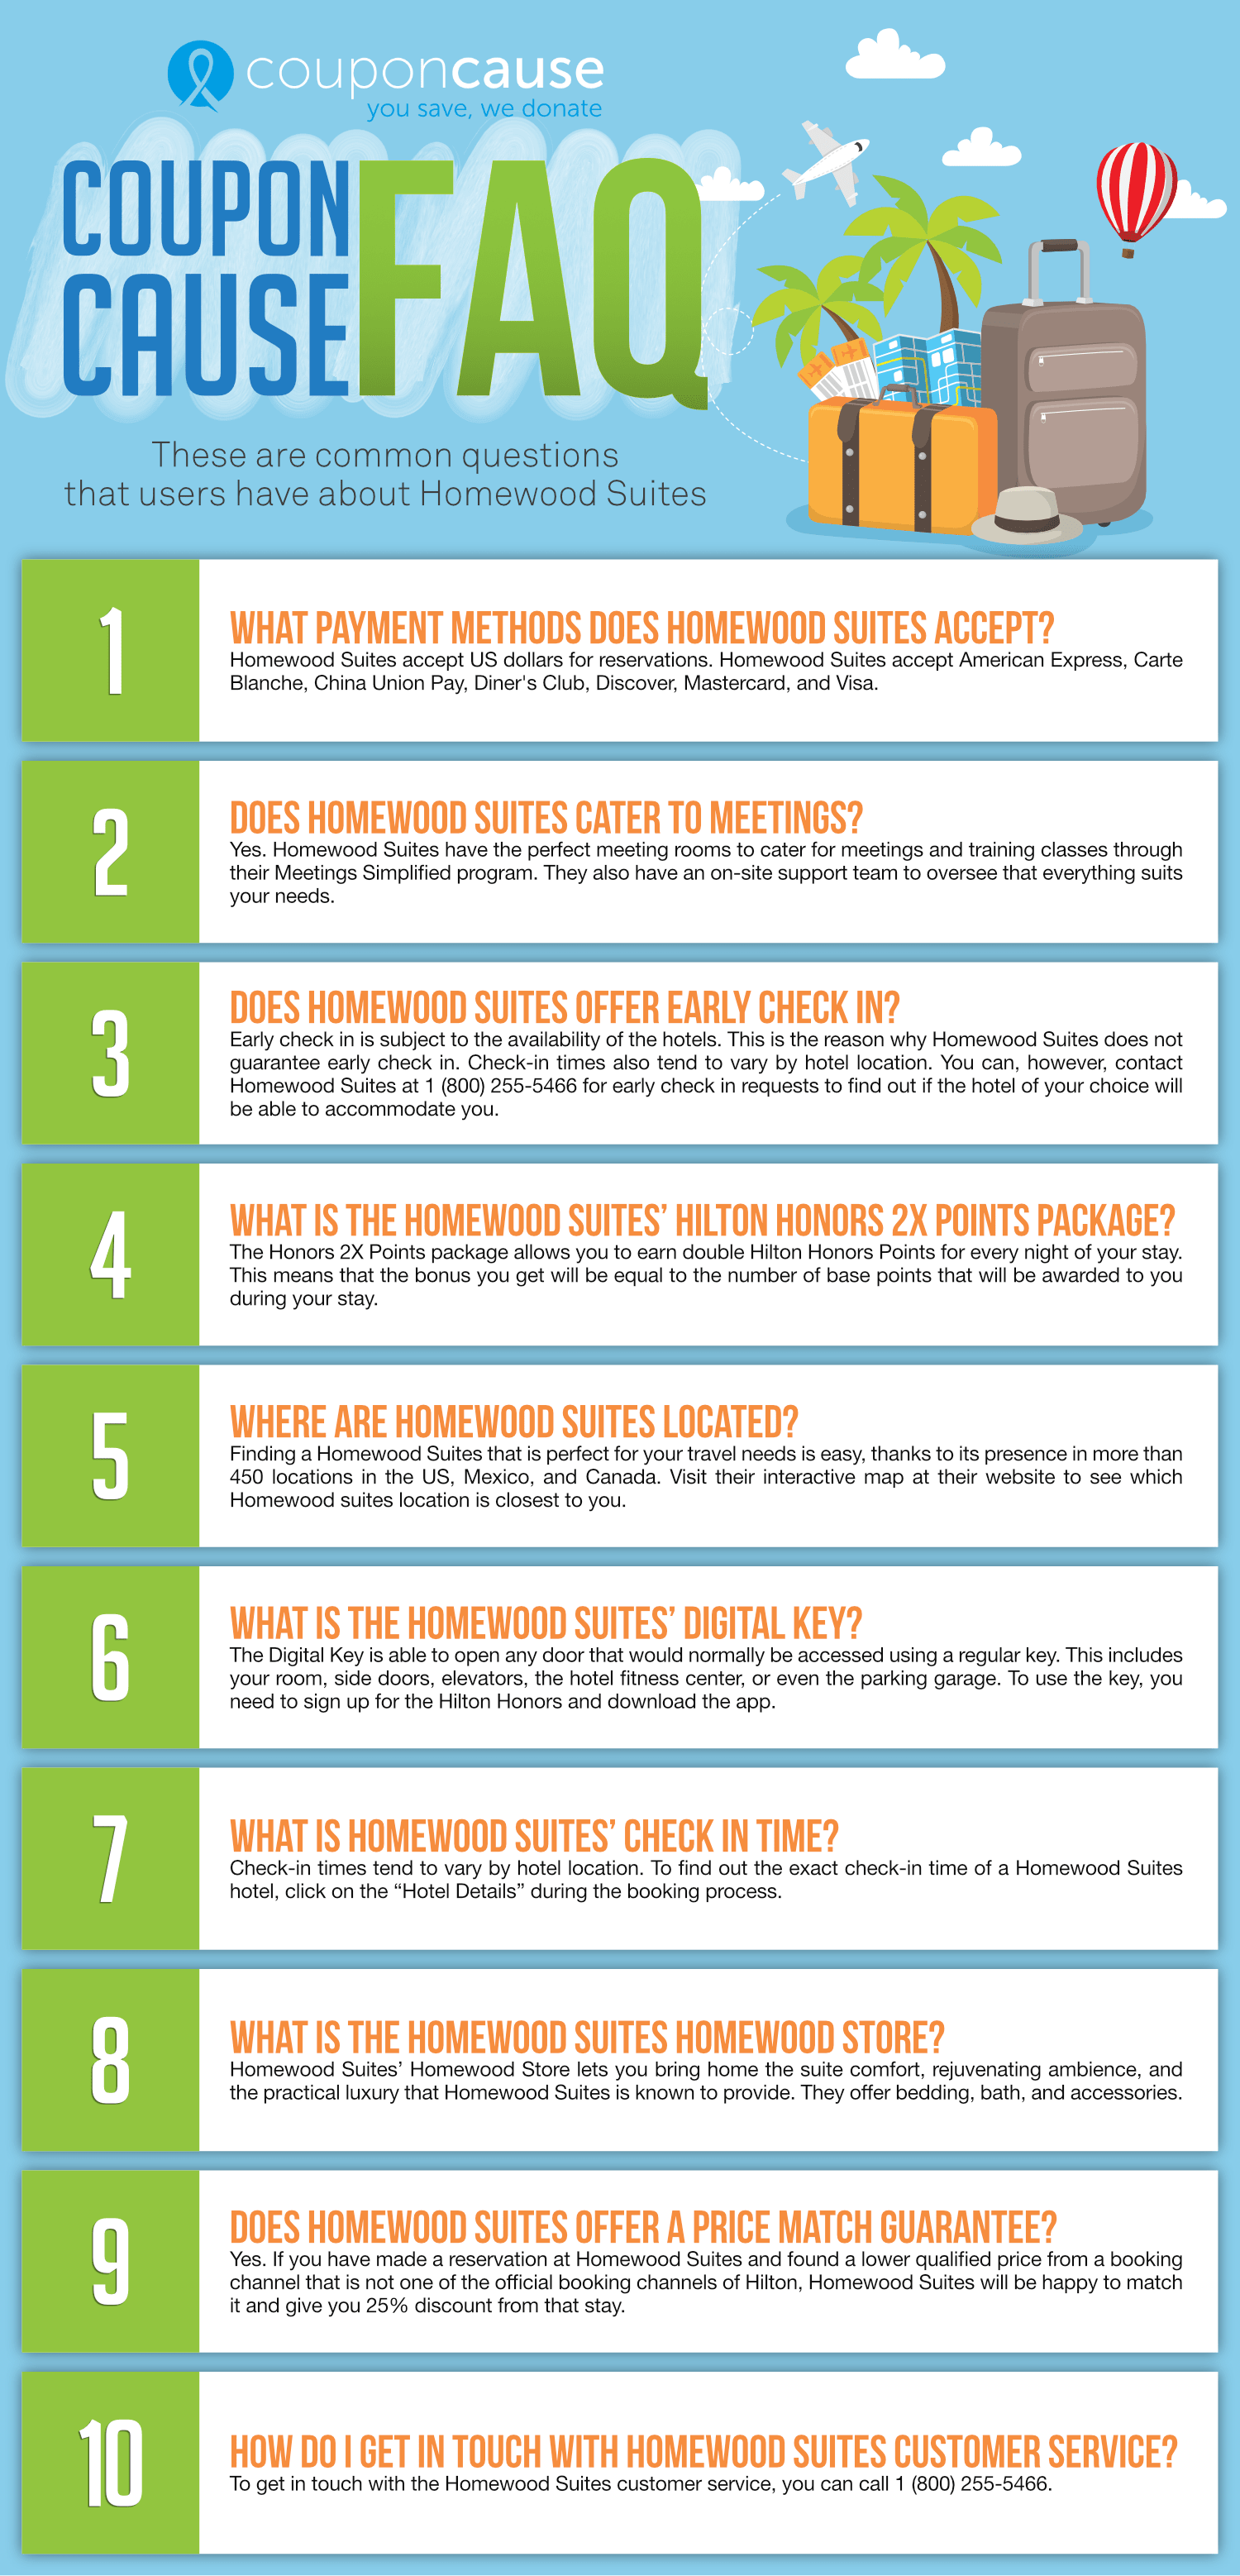 Homewood Suites Coupon Cause FAQ (C.C. FAQ) Infographic